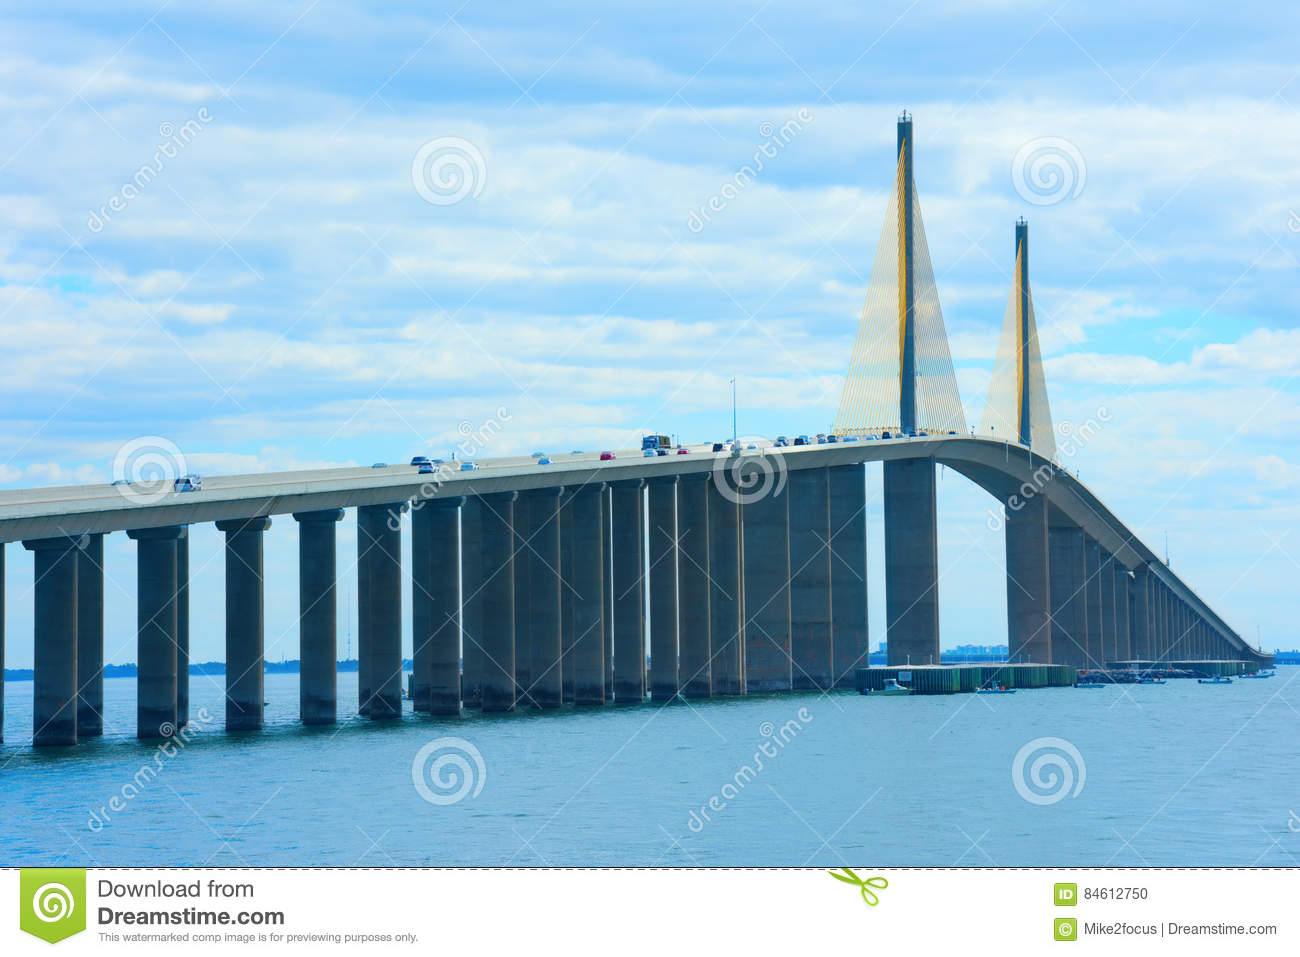 Unique angle of Sunshine Skyway Bridge over Tampa Bay Florida